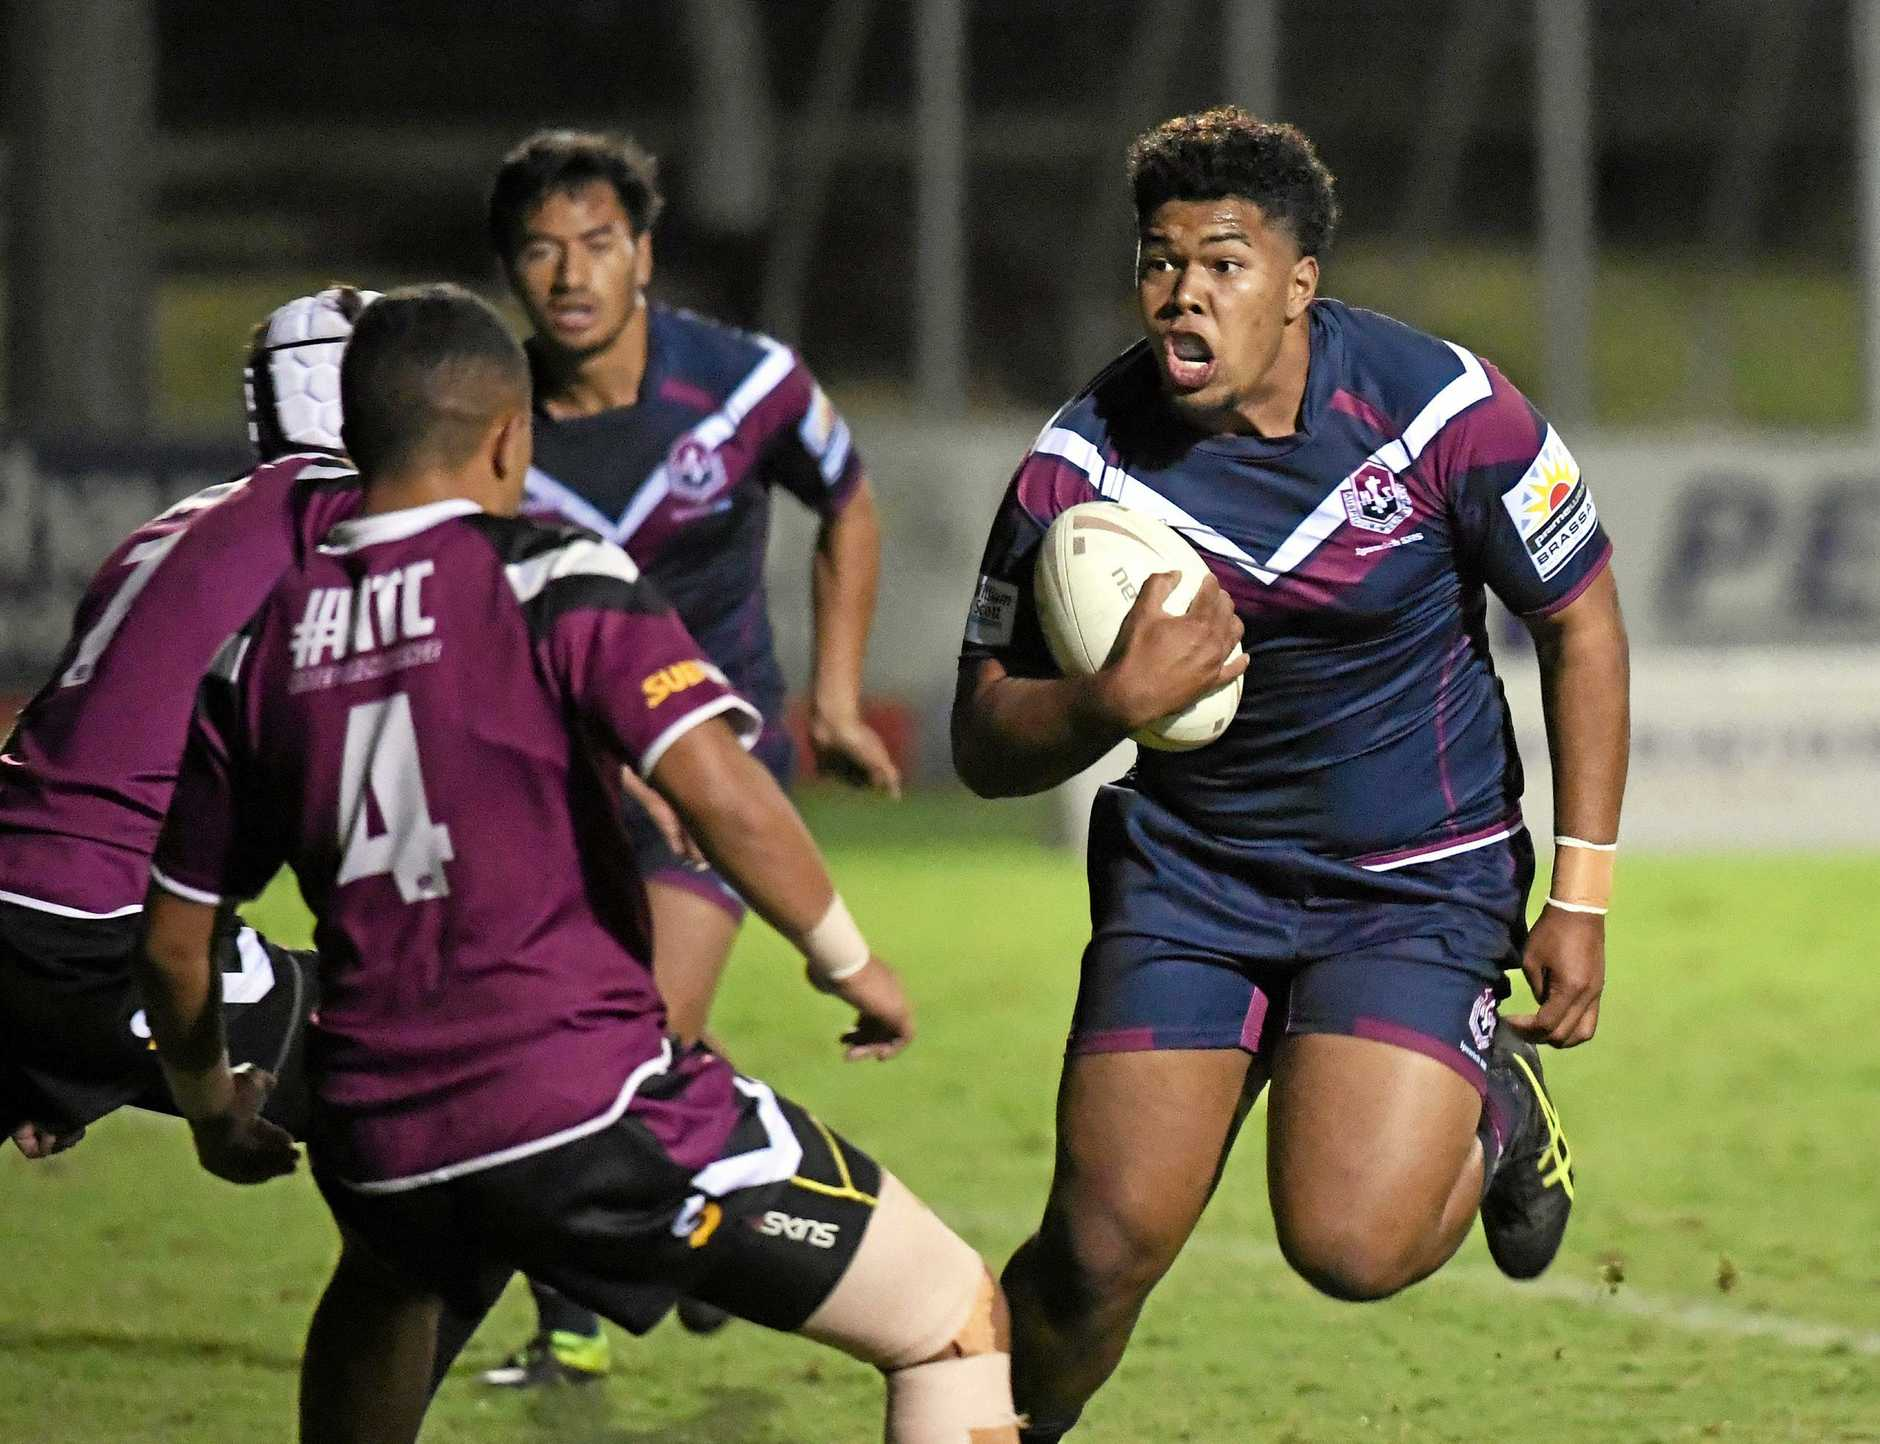 OUT OF MY WAY: Ipswich High's Ilai Tuia and his mates in the engine room will need to be on their games as two of the biggest schoolboy packs in the country go head-to-head.